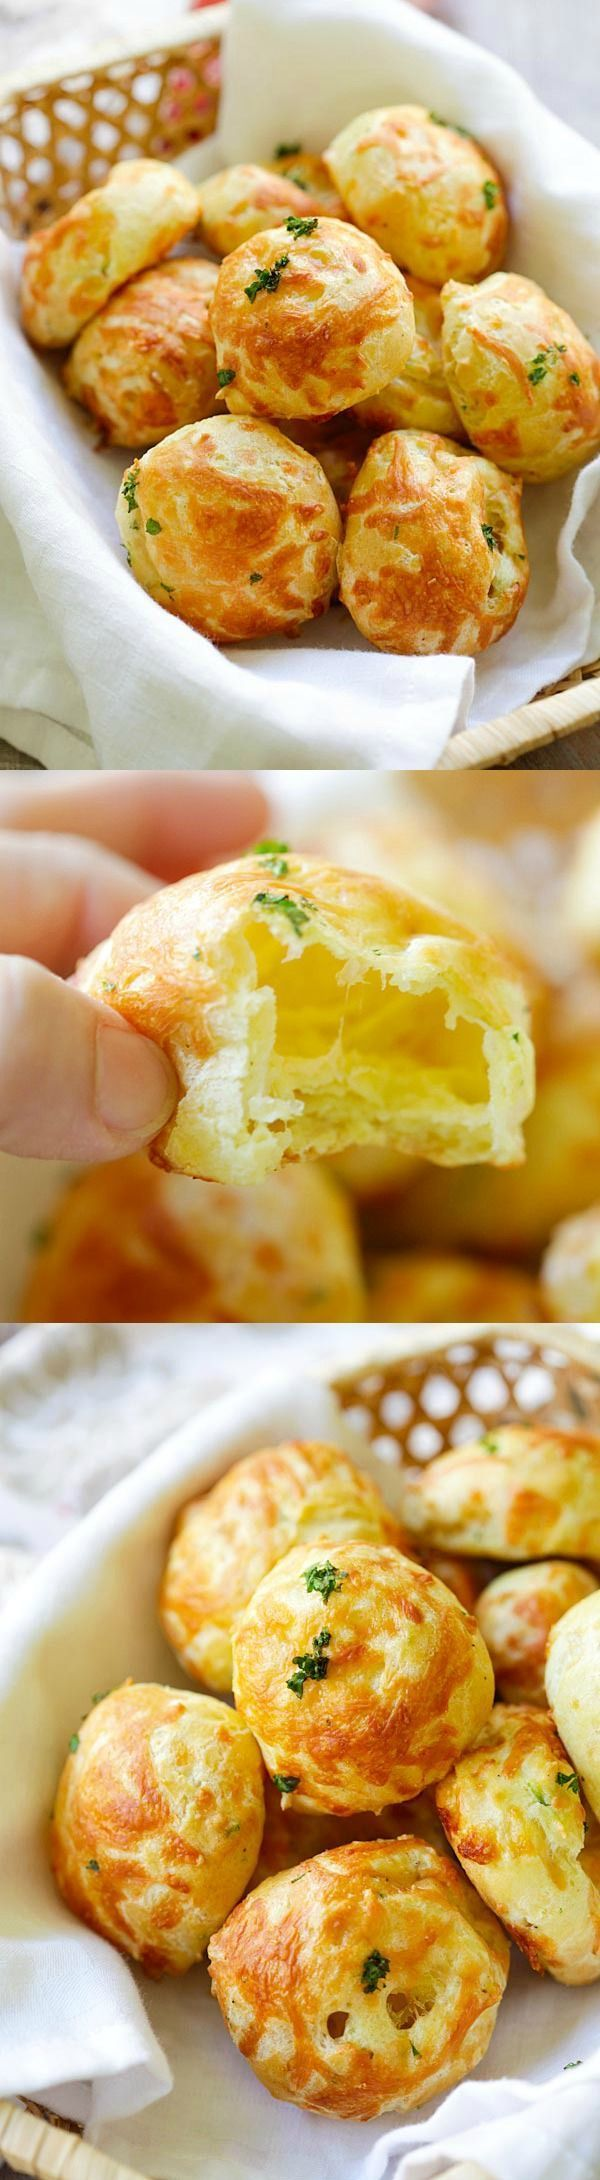 Cheese Puffs (Gougeres) - best and easiest recipe for puffy, light and airy French cheese puffs. Loaded with mozzarella and parmesan cheese, so good | http://rasamalaysia.com